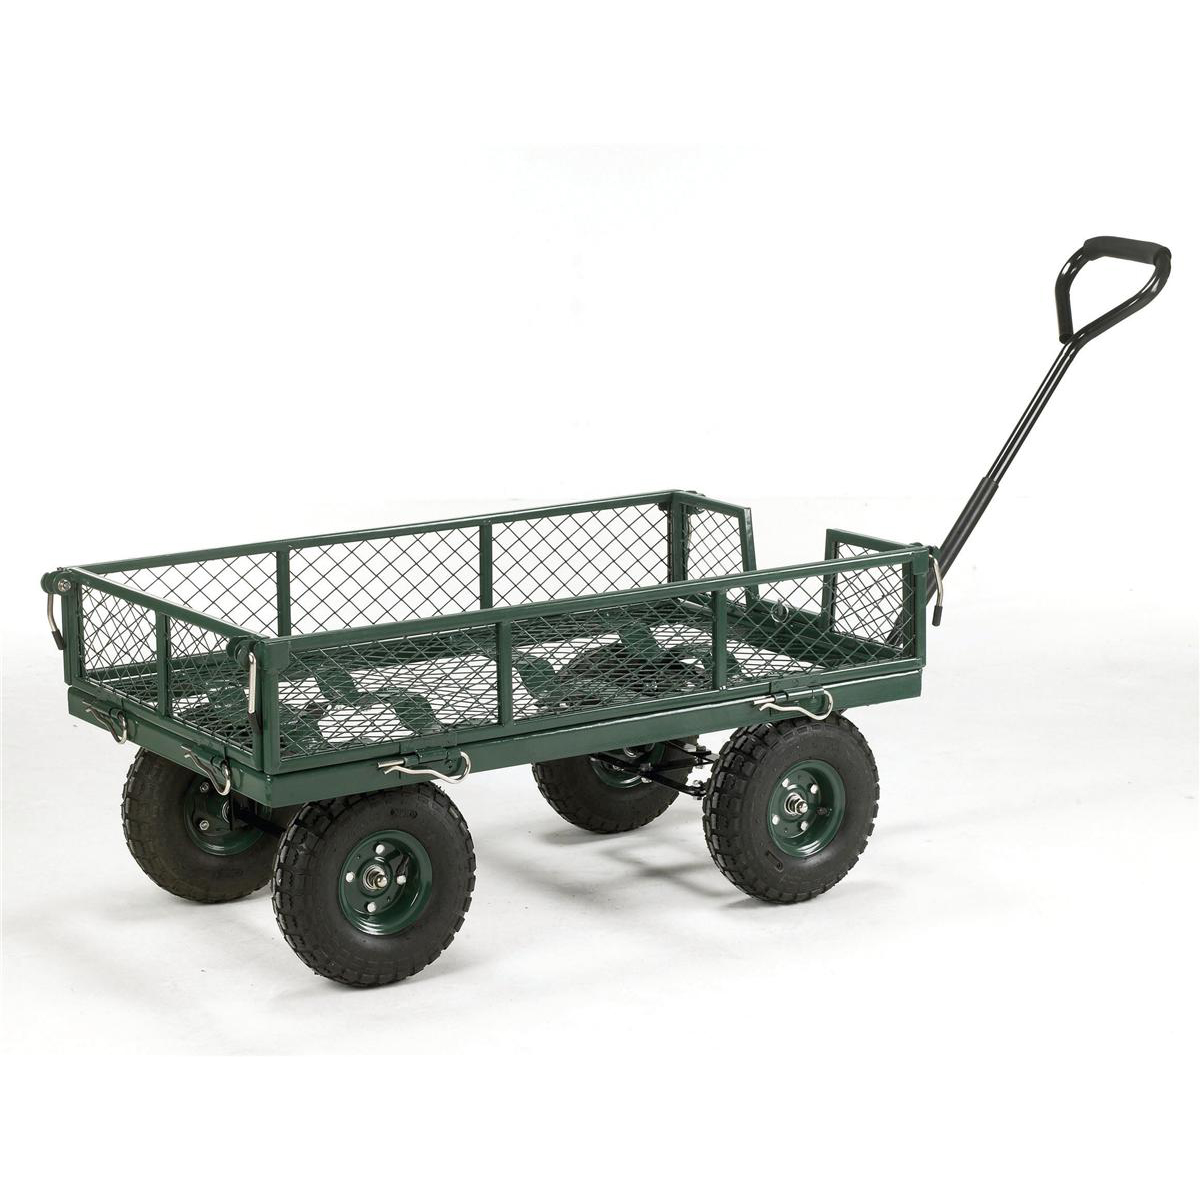 Platform truck Platform Truck Toptruck Mesh Four Sided Capacity 250kg Pneumatic Wheels Green